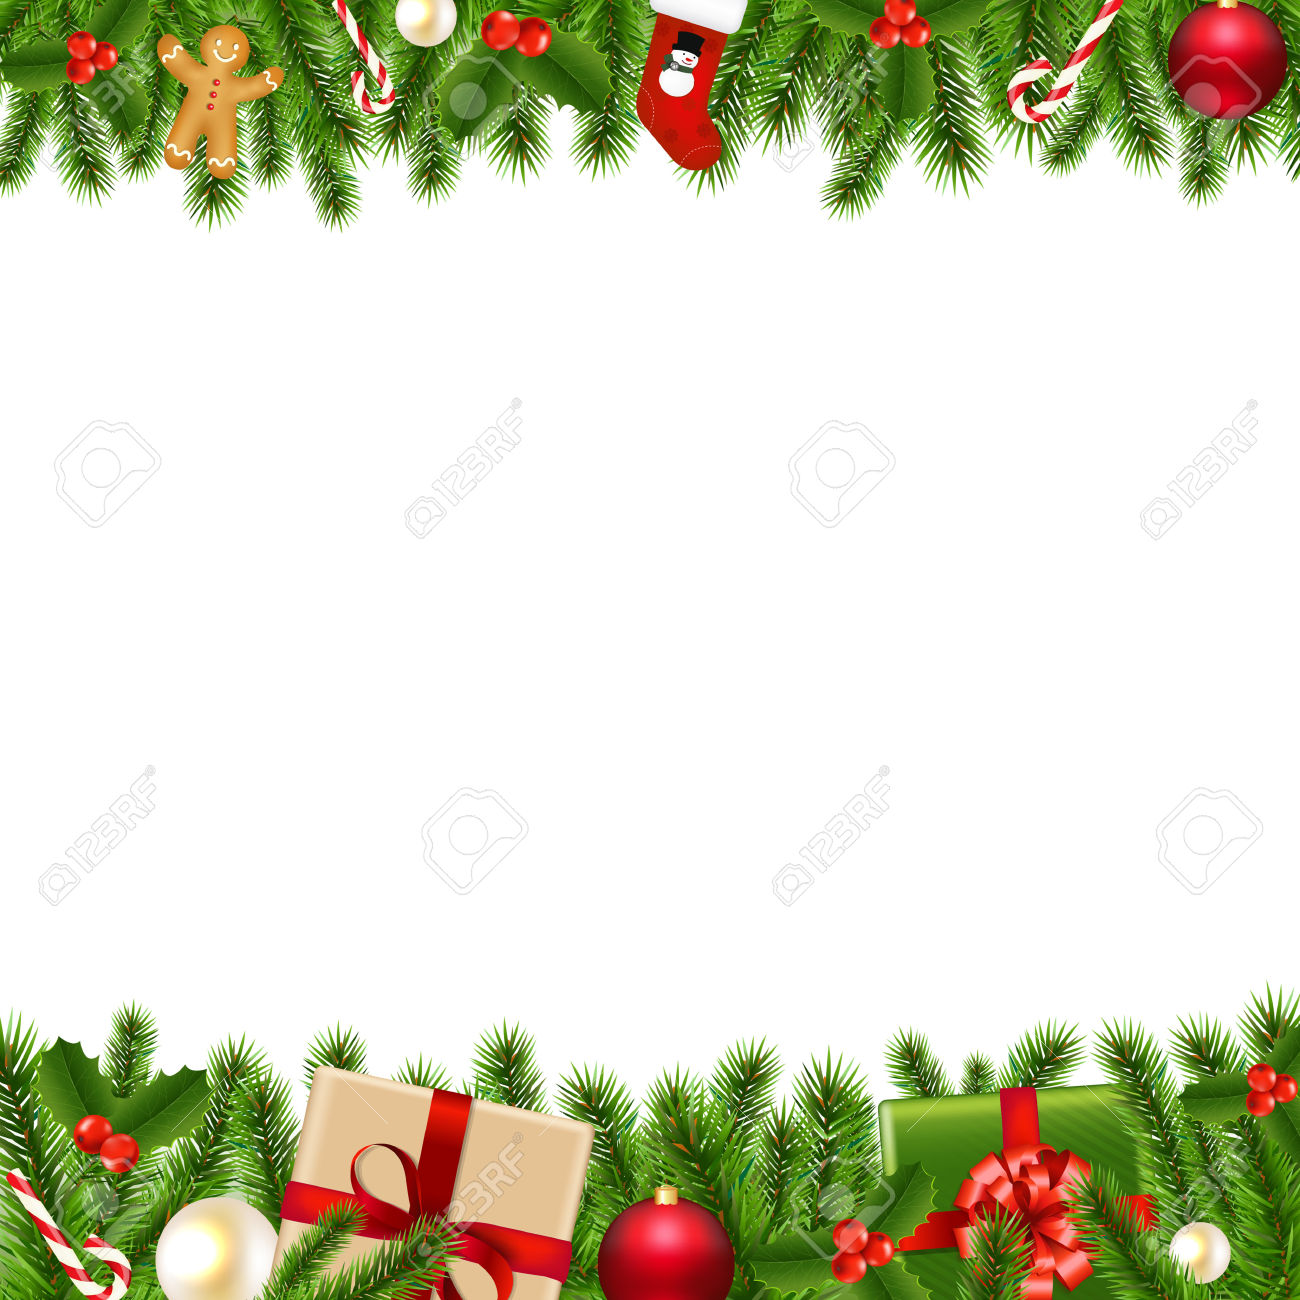 Merry Christmas Borders » Clipart Station.